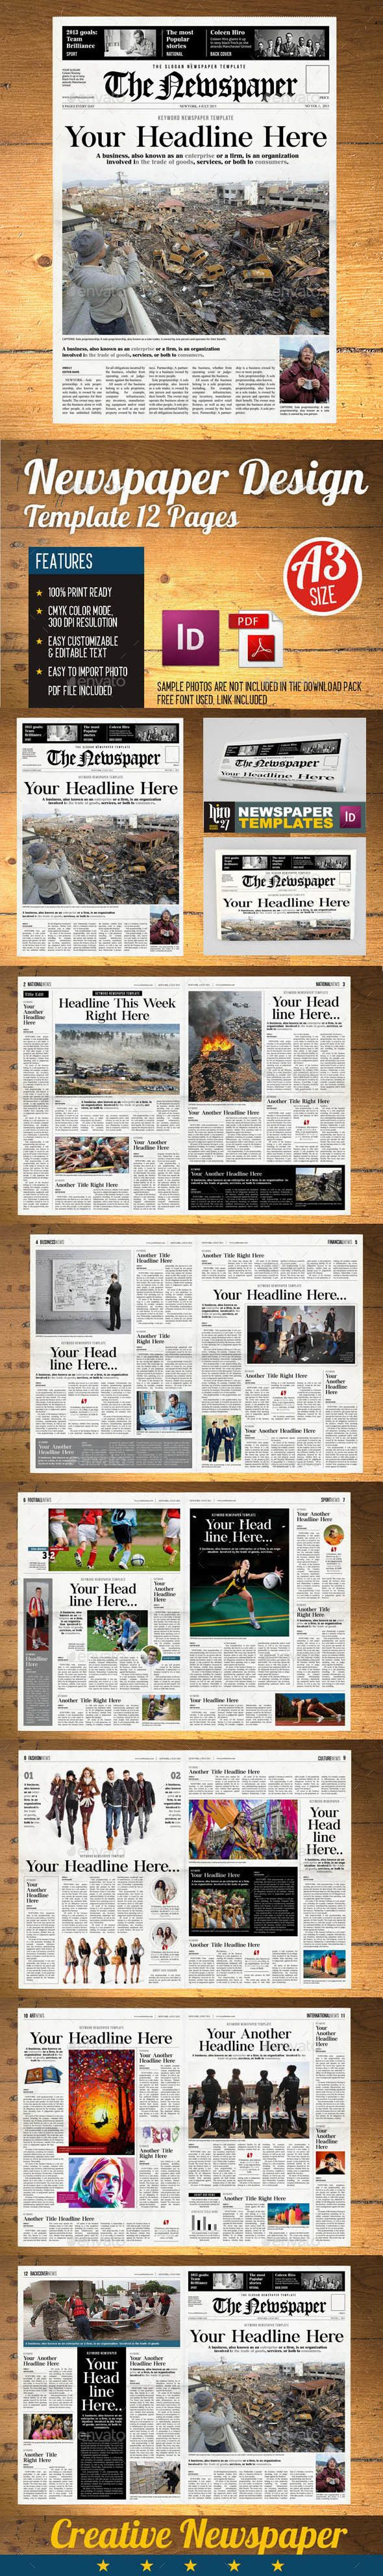 100 adobe illustrator newspaper template apps stock adobe illustrator newspaper template the 23 best images about newspaper templates on pinterest pronofoot35fo Image collections